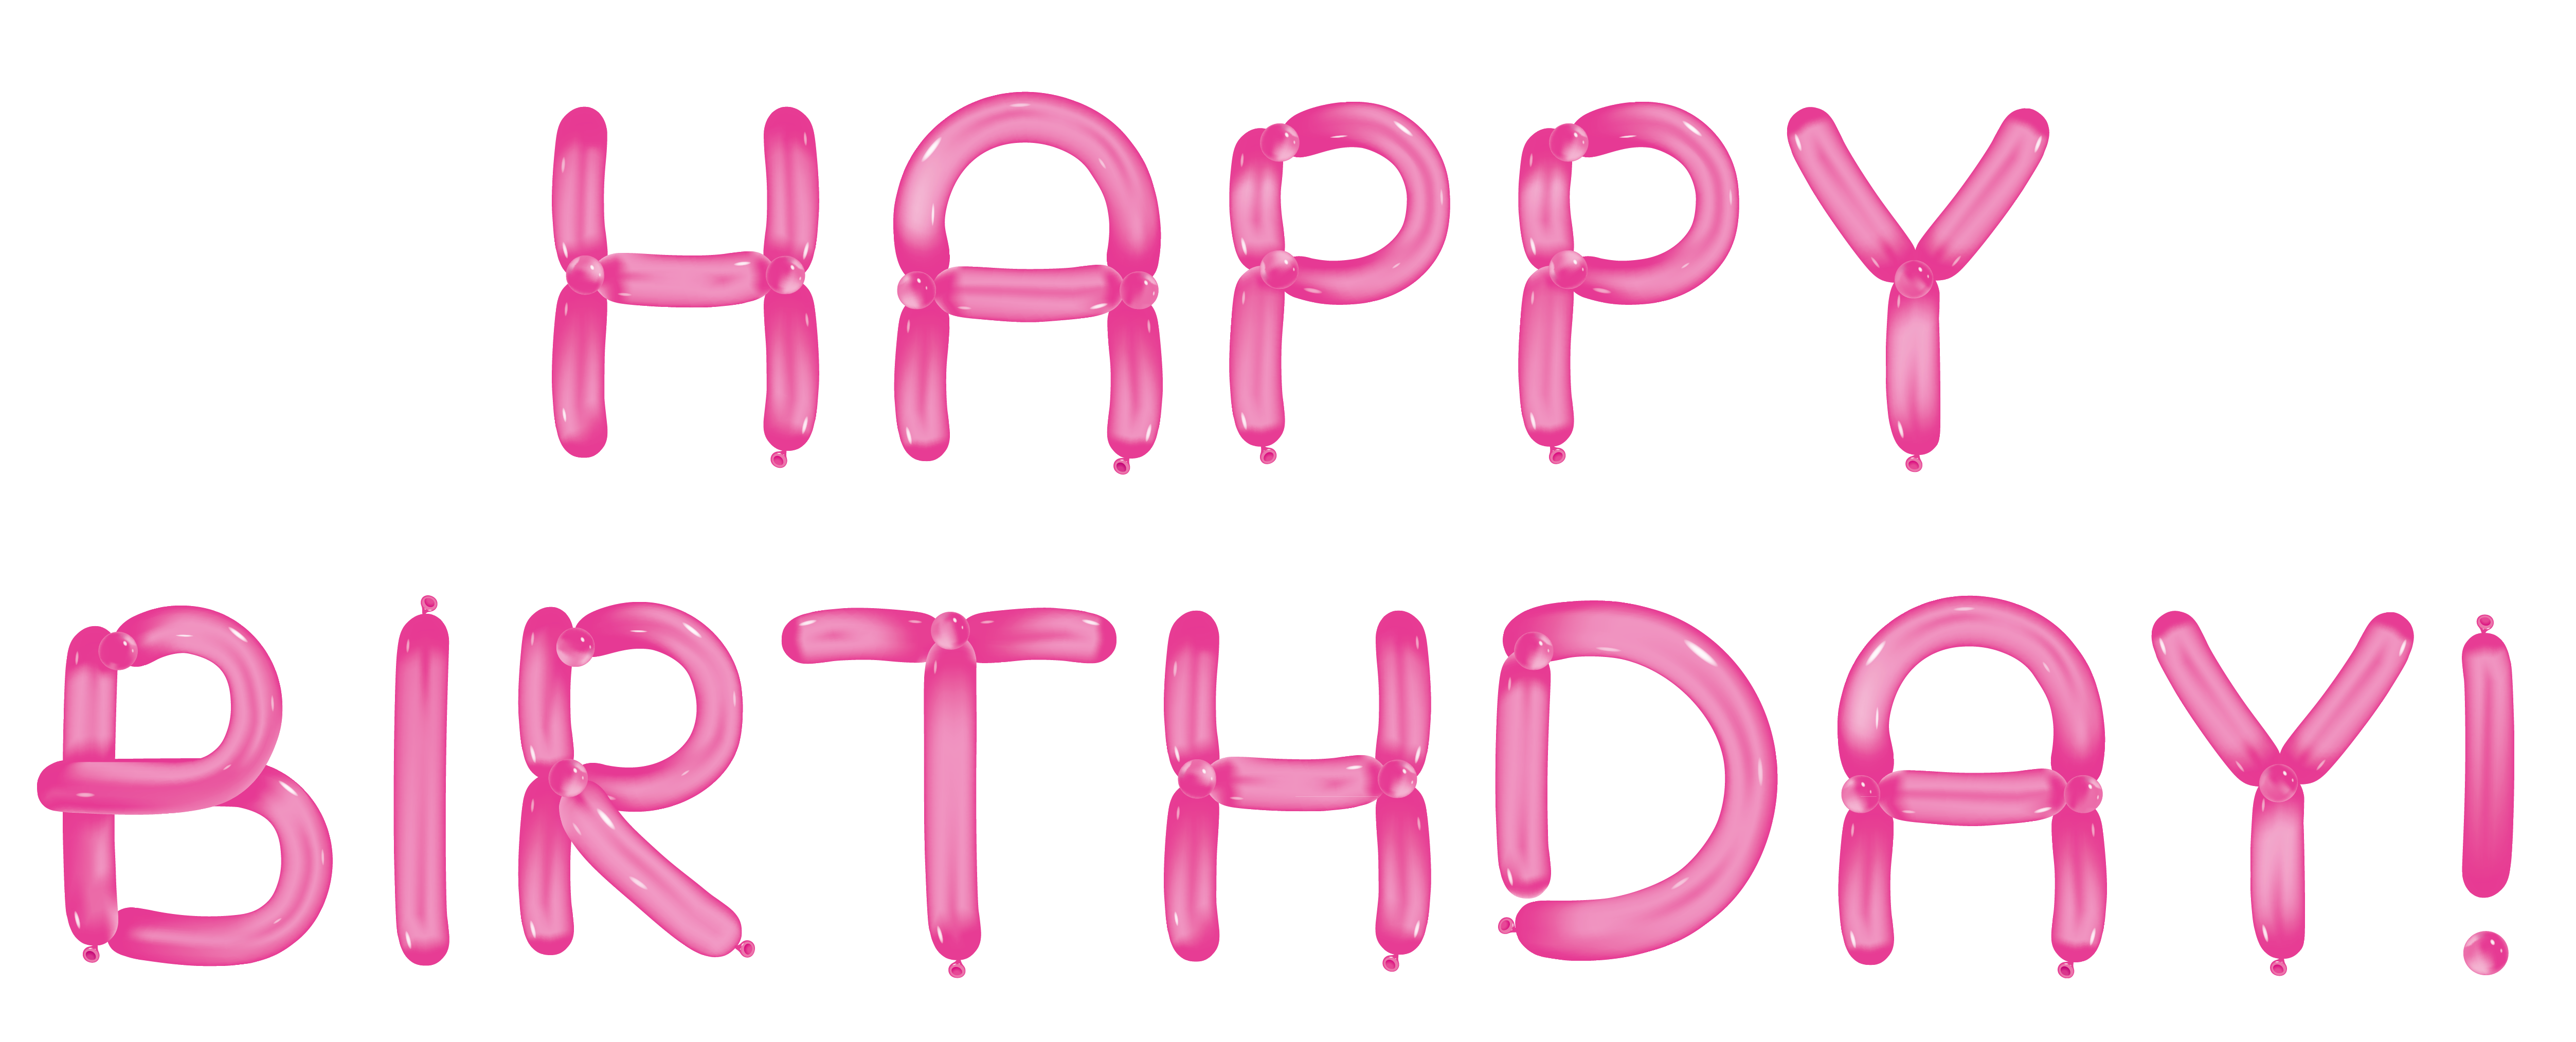 Happy birthday pink png. With balloons transparent clipart